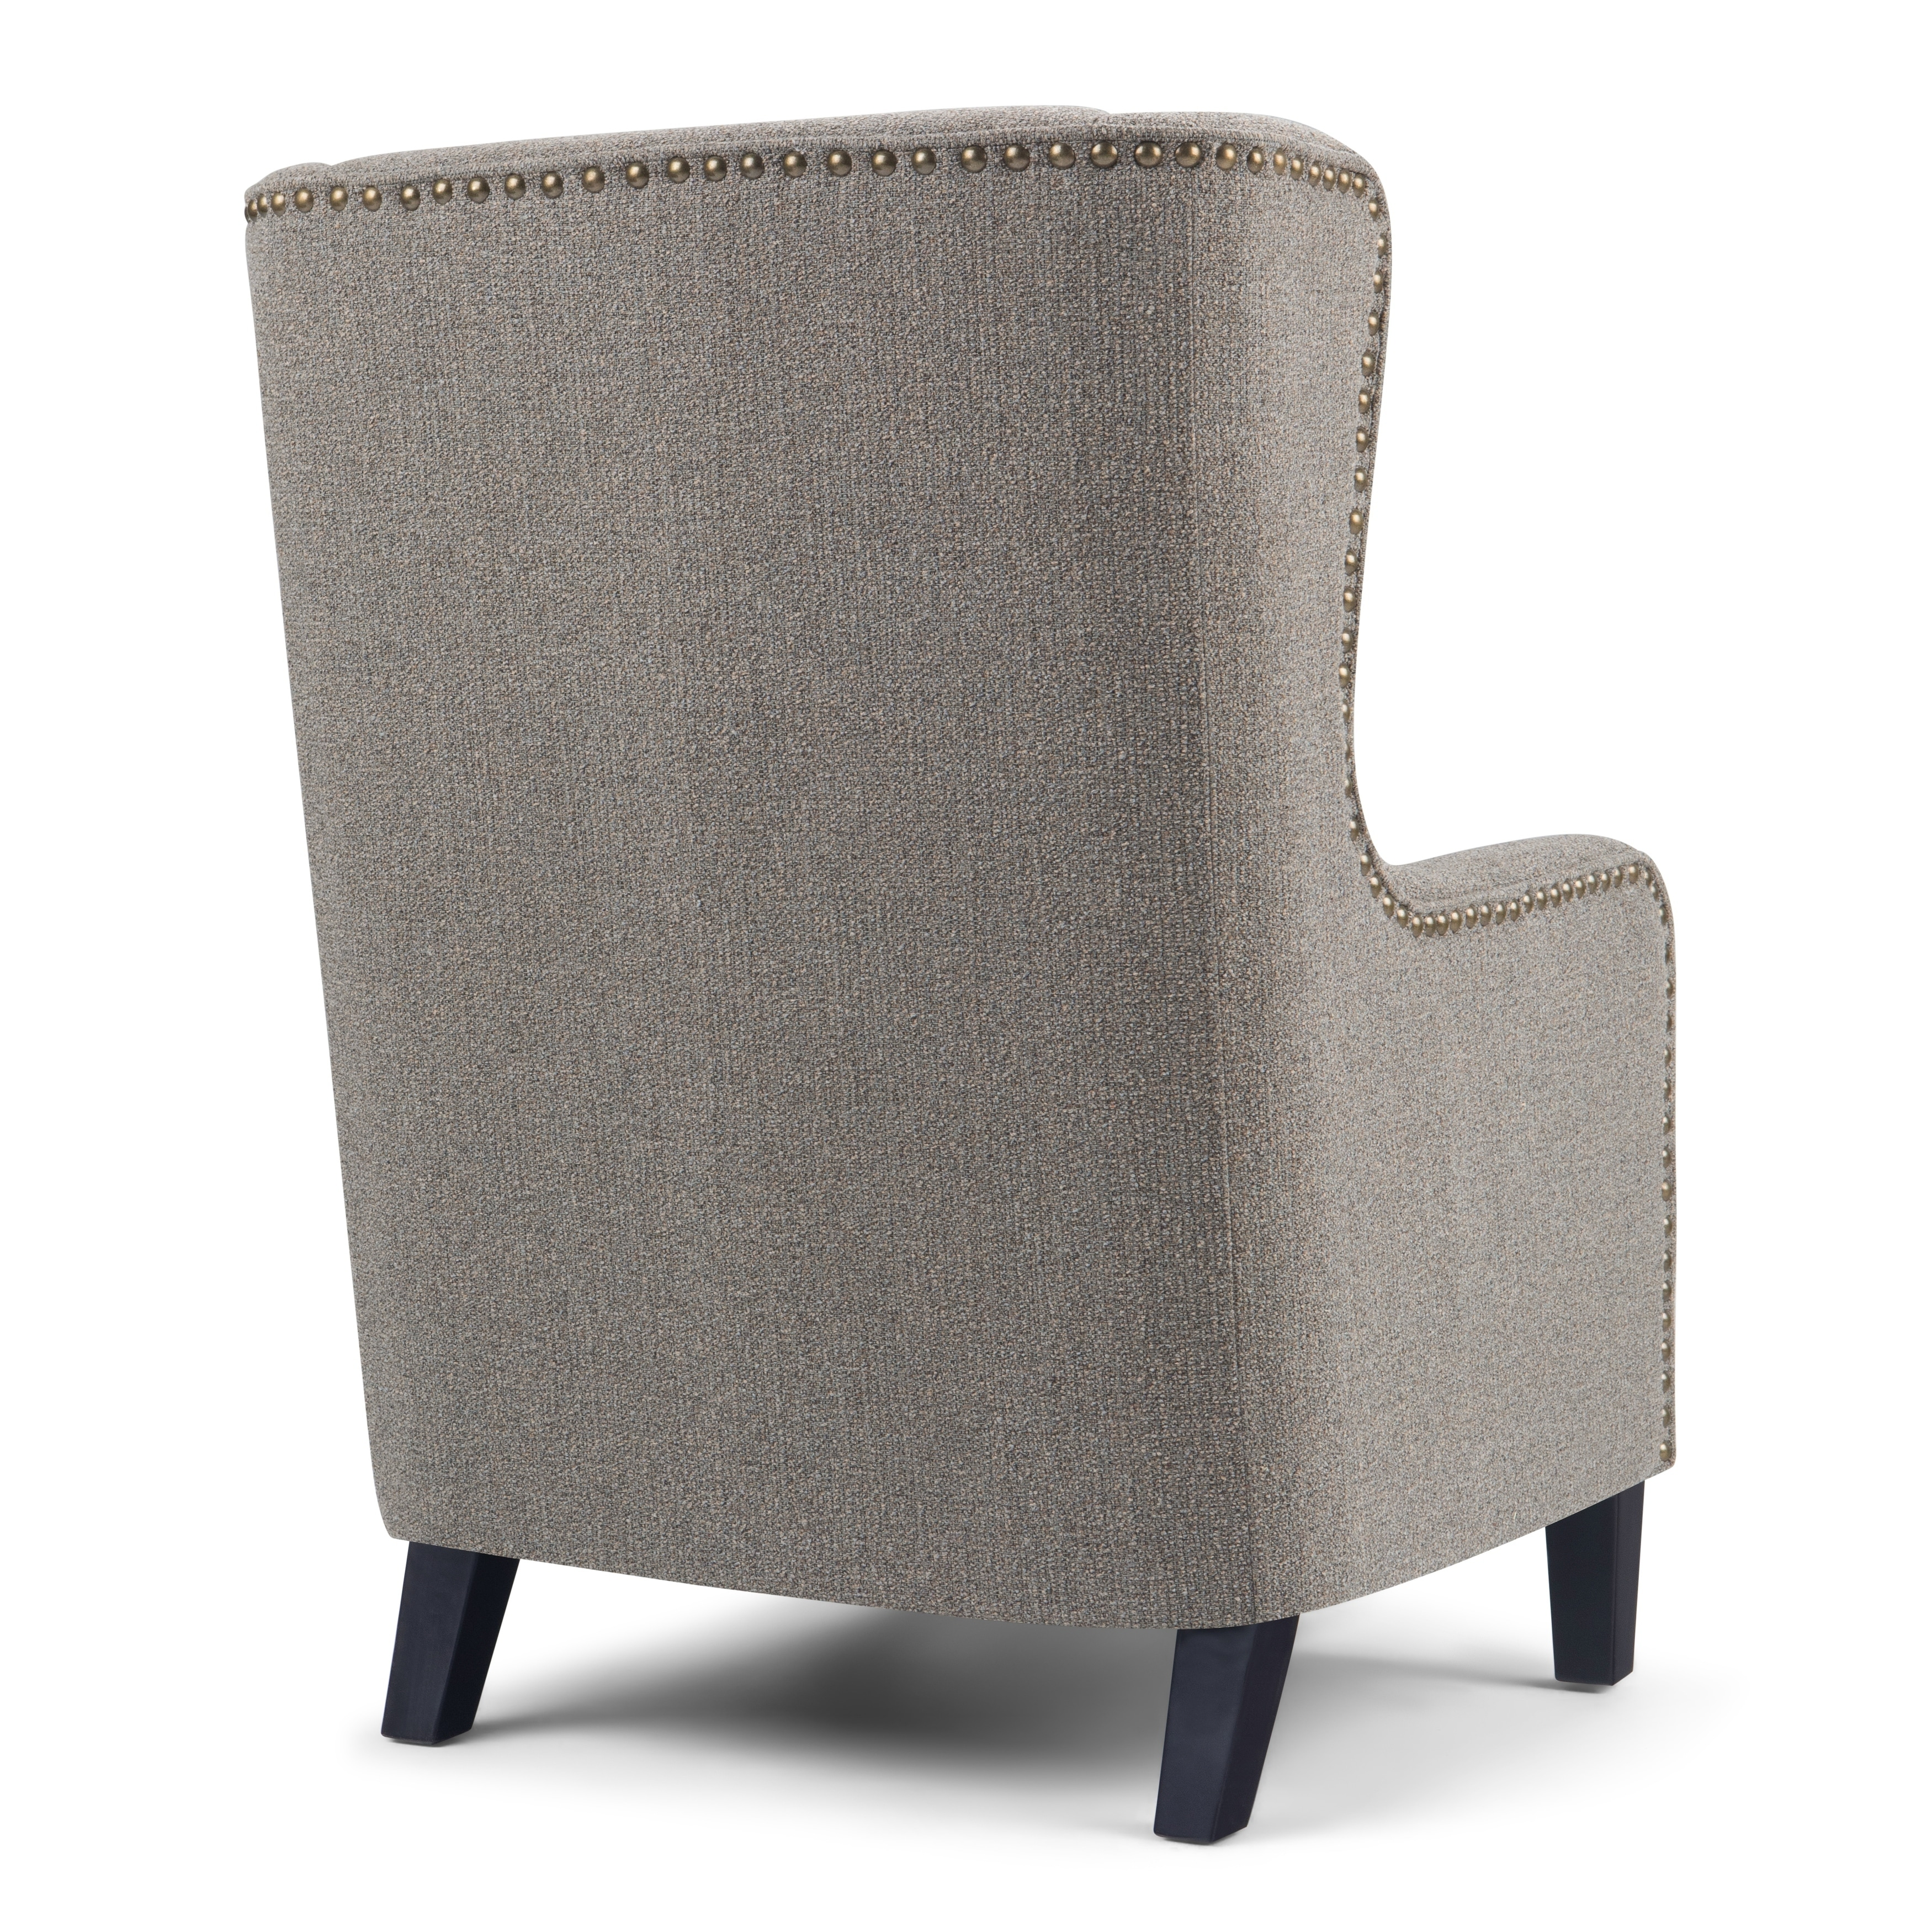 Wyndenhall Manford 28 Inch Wide Traditional Wingback Armchair In 27 6 W X 33 7 D X 39 8 H